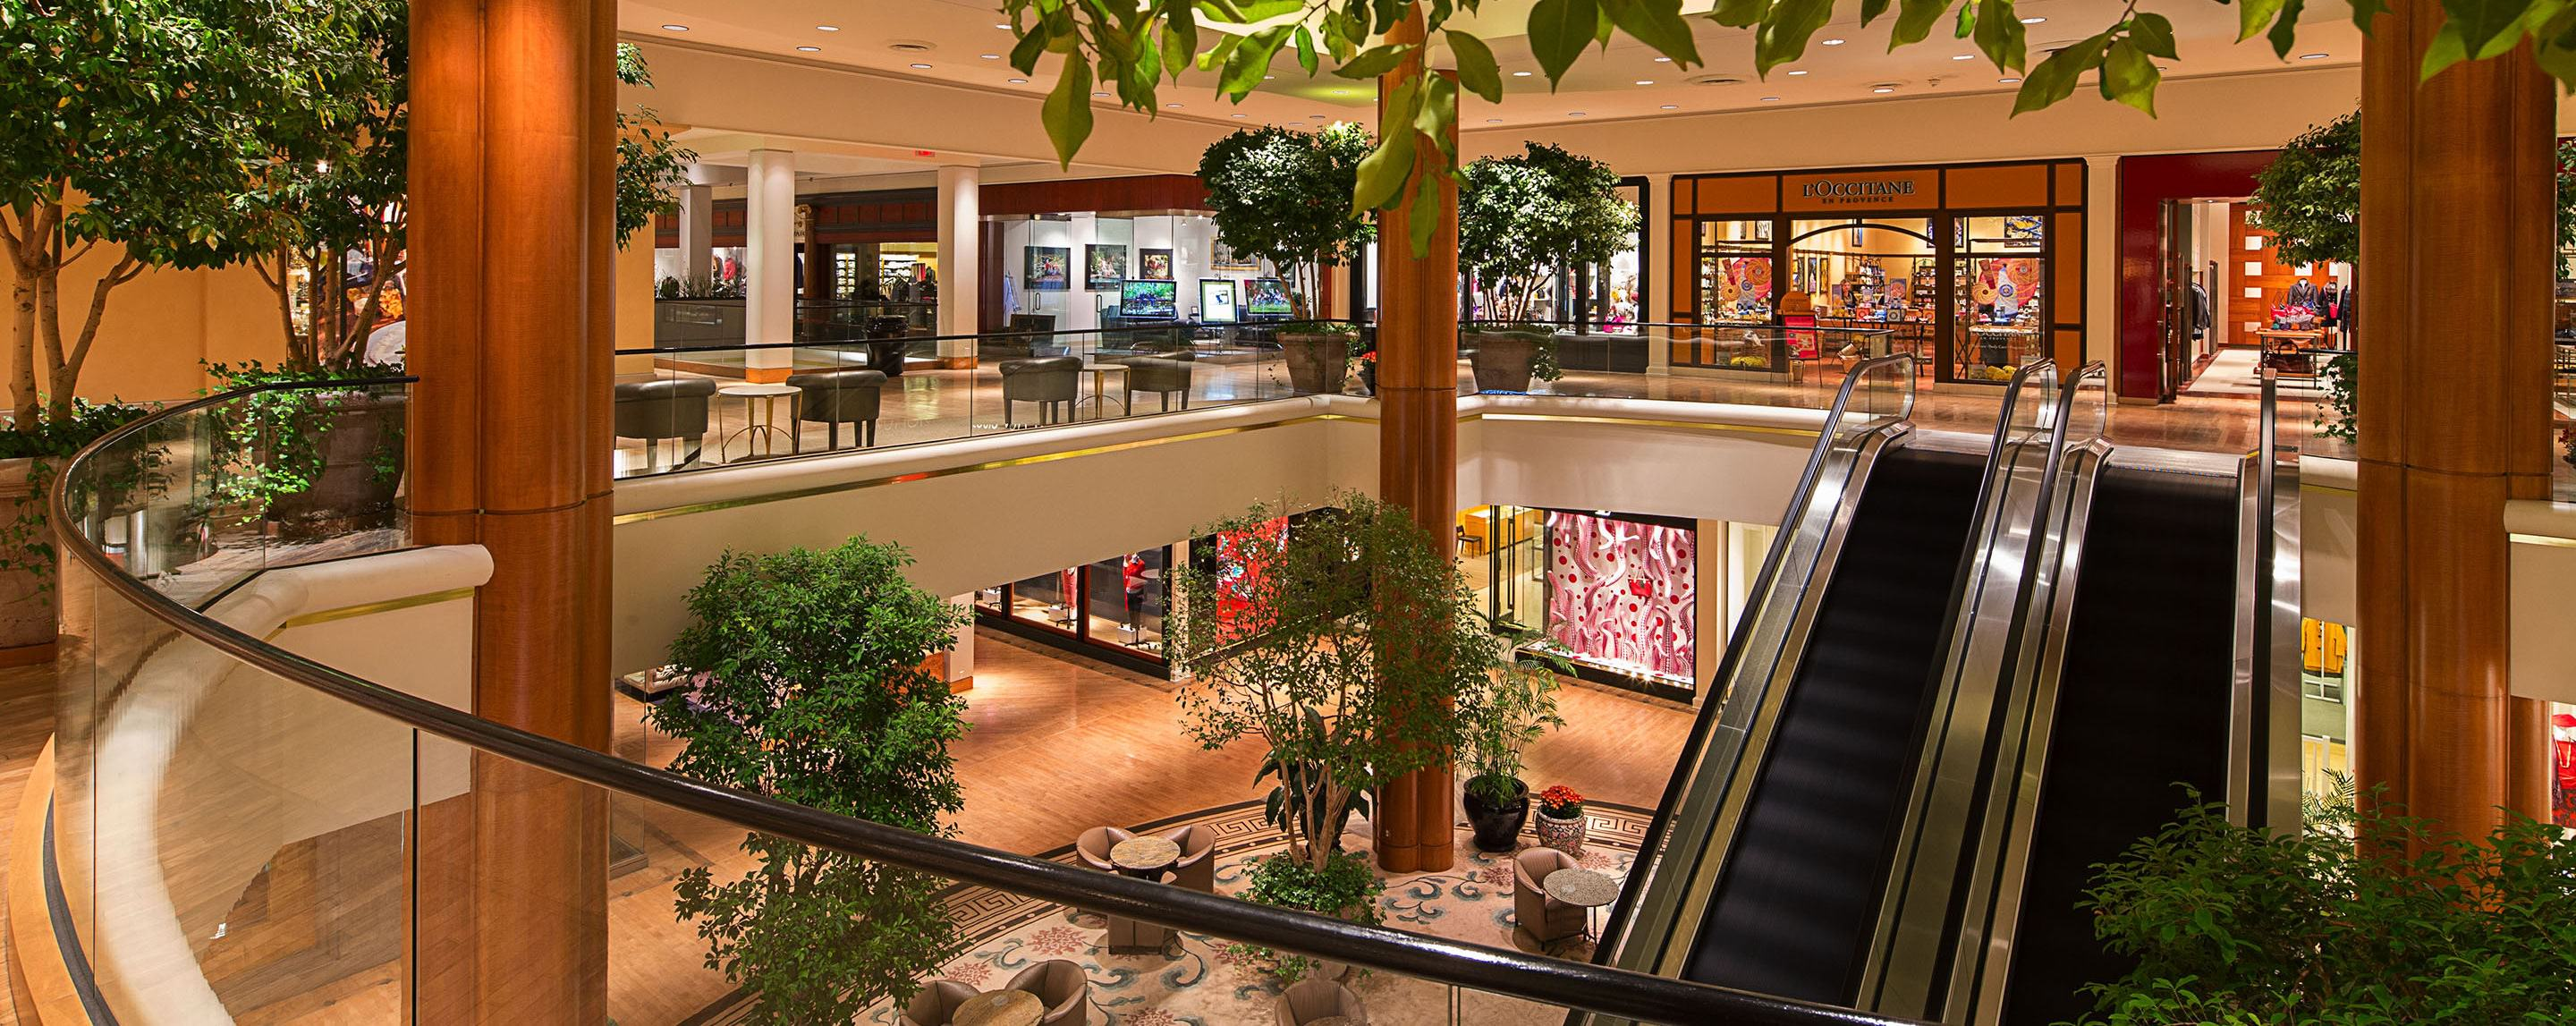 Trees and plants decorate the area of a two storied shopping center with an escalator.